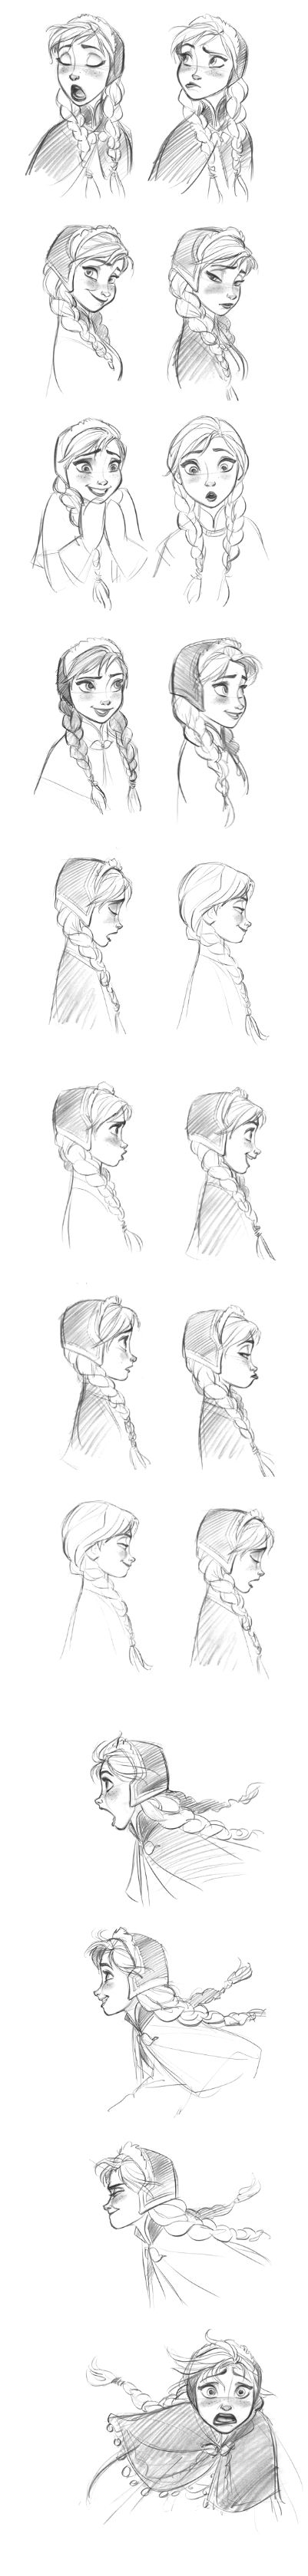 """Anna (Frozen)"" Expressions by Jin Kim* 